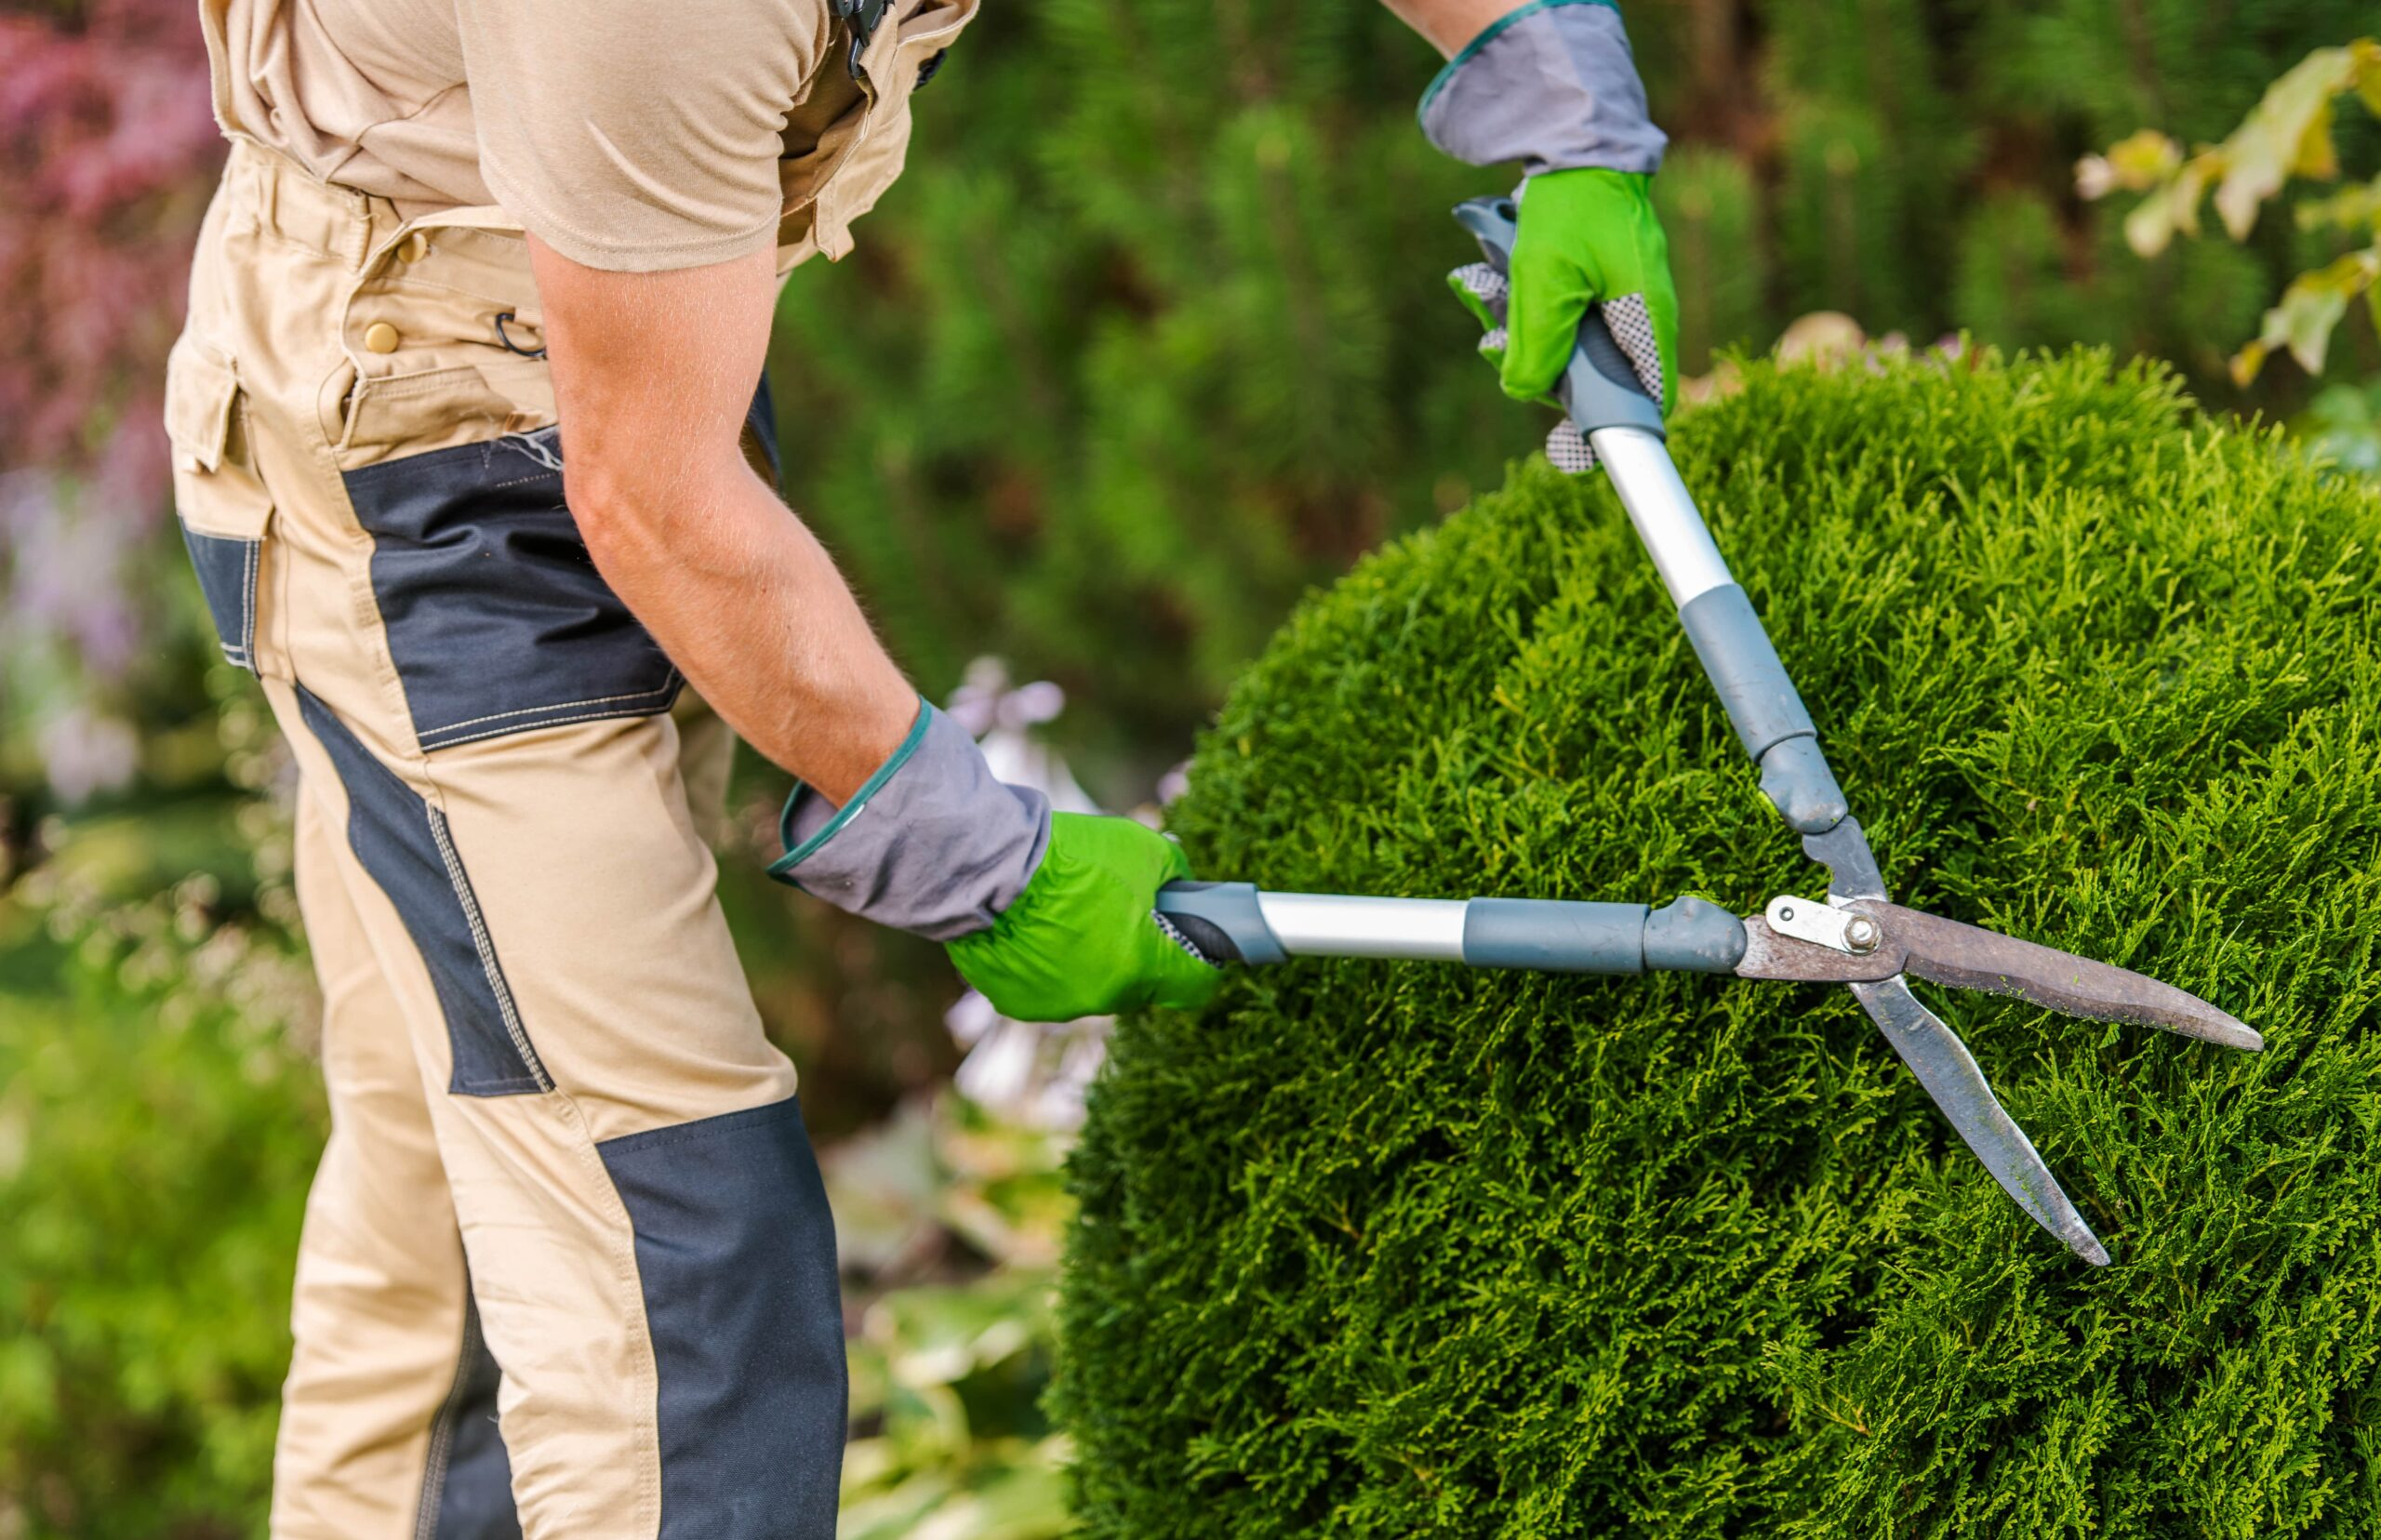 gardener-pruning-and-shaping-bushes-3UP49X7-min